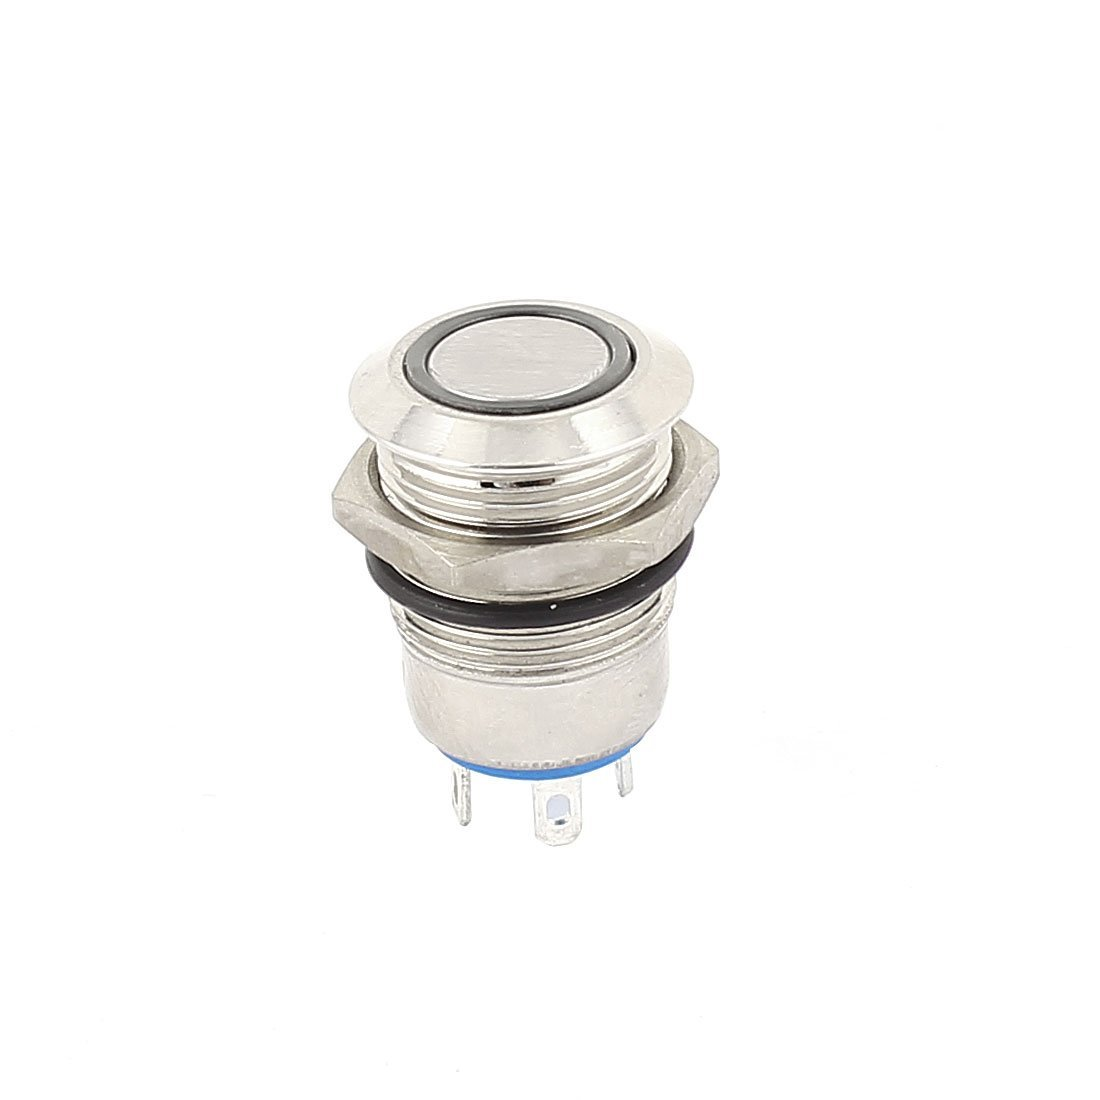 Cheap 6 Pin Dpst On Off Led Push Button Switch Find Pushbuttons Momentary And Latching In Blue White Get Quotations Dc 3v 2a 4pin Terminals Light